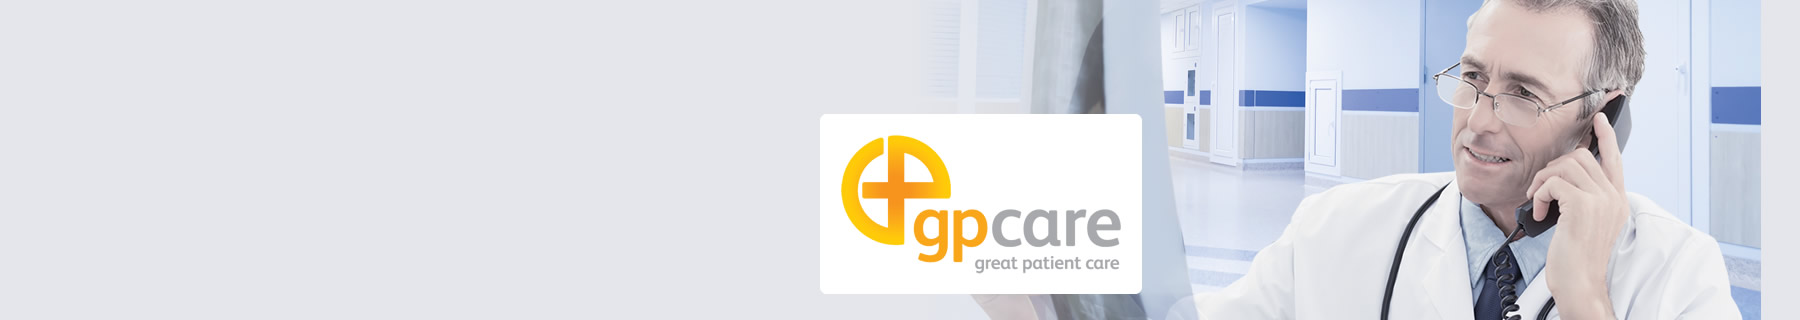 GP Care - GPs and Hospital Consultant liaison has been enhanced with hunt groups